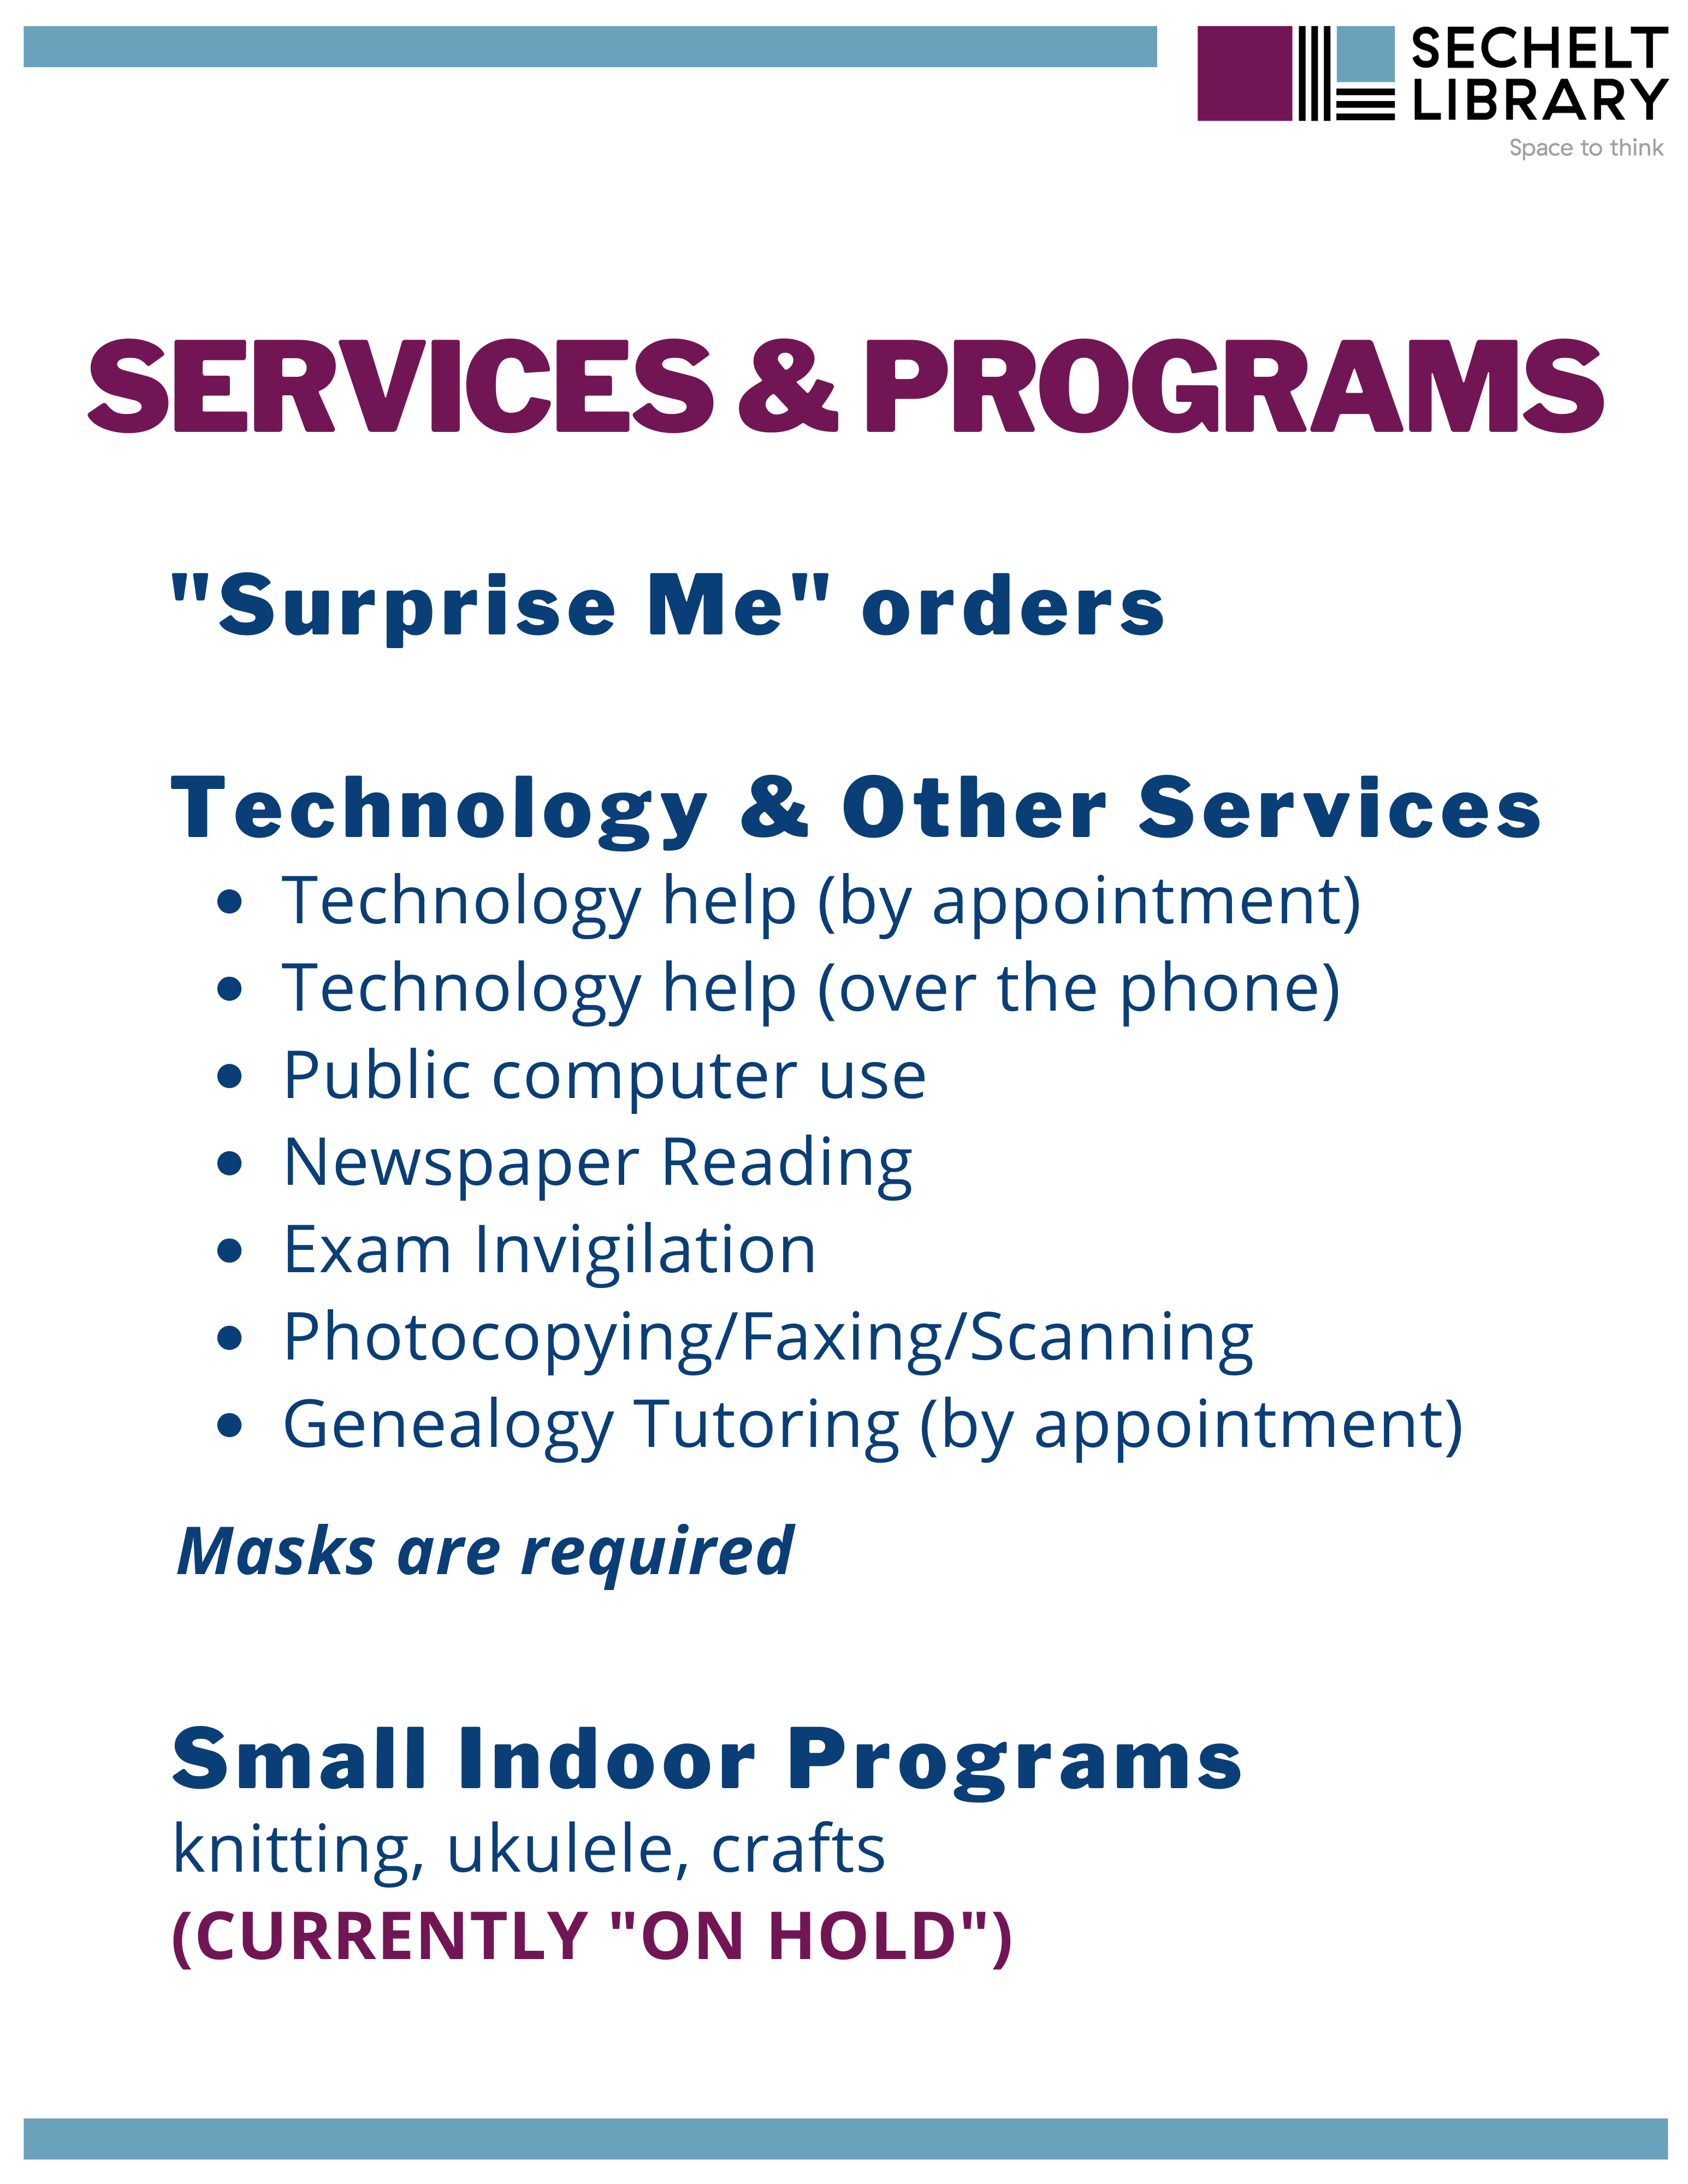 All Current Services and Programs